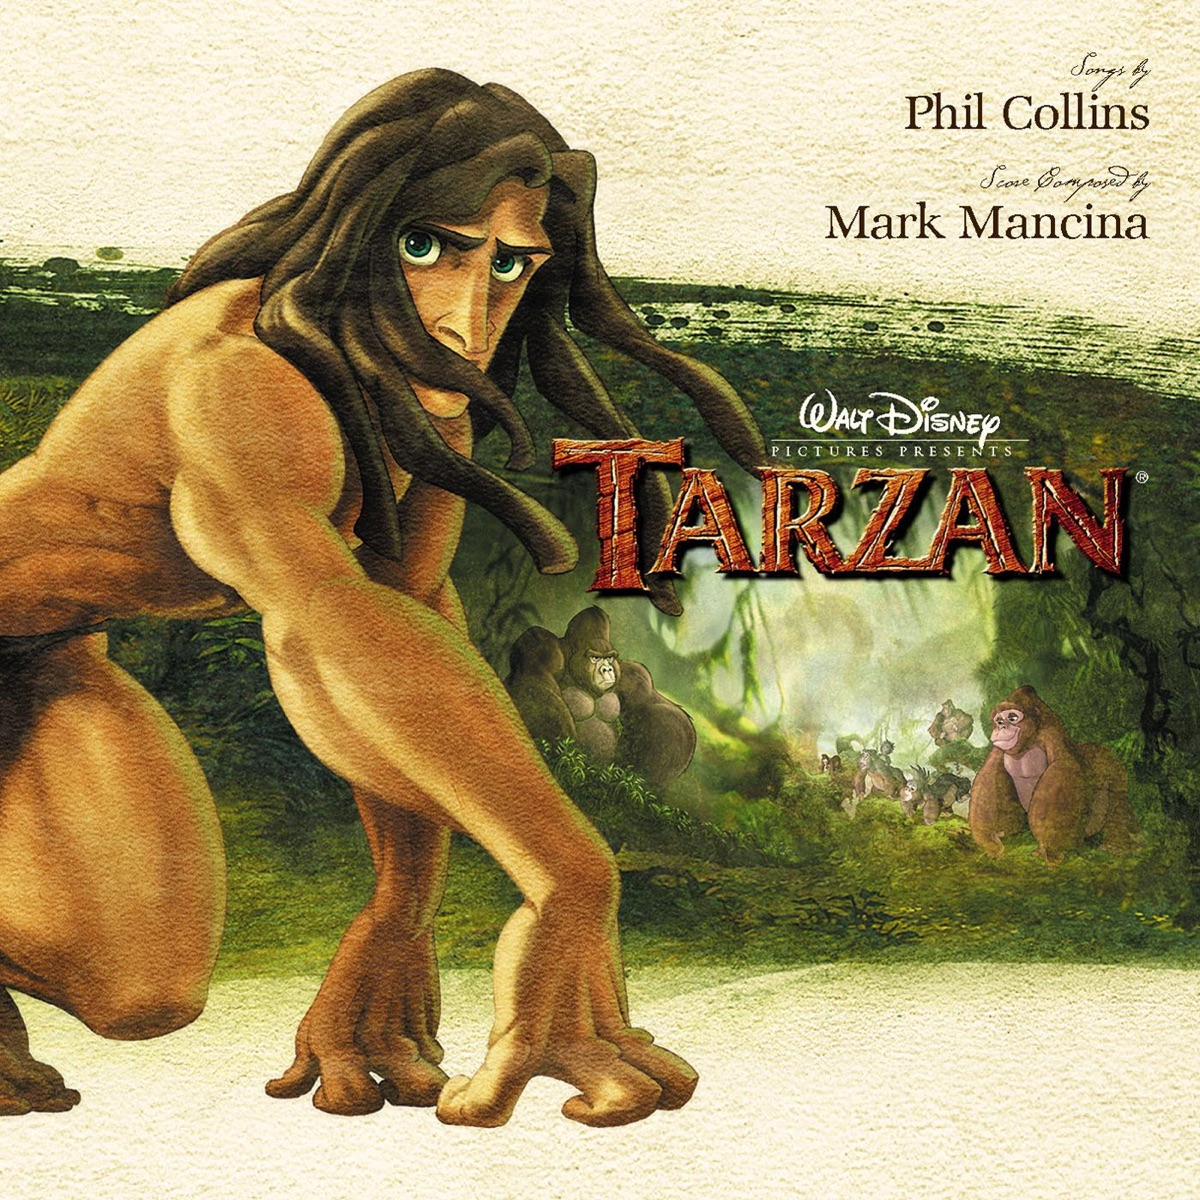 Tarzan Soundtrack from the Motion Picture Phil Collins CD cover